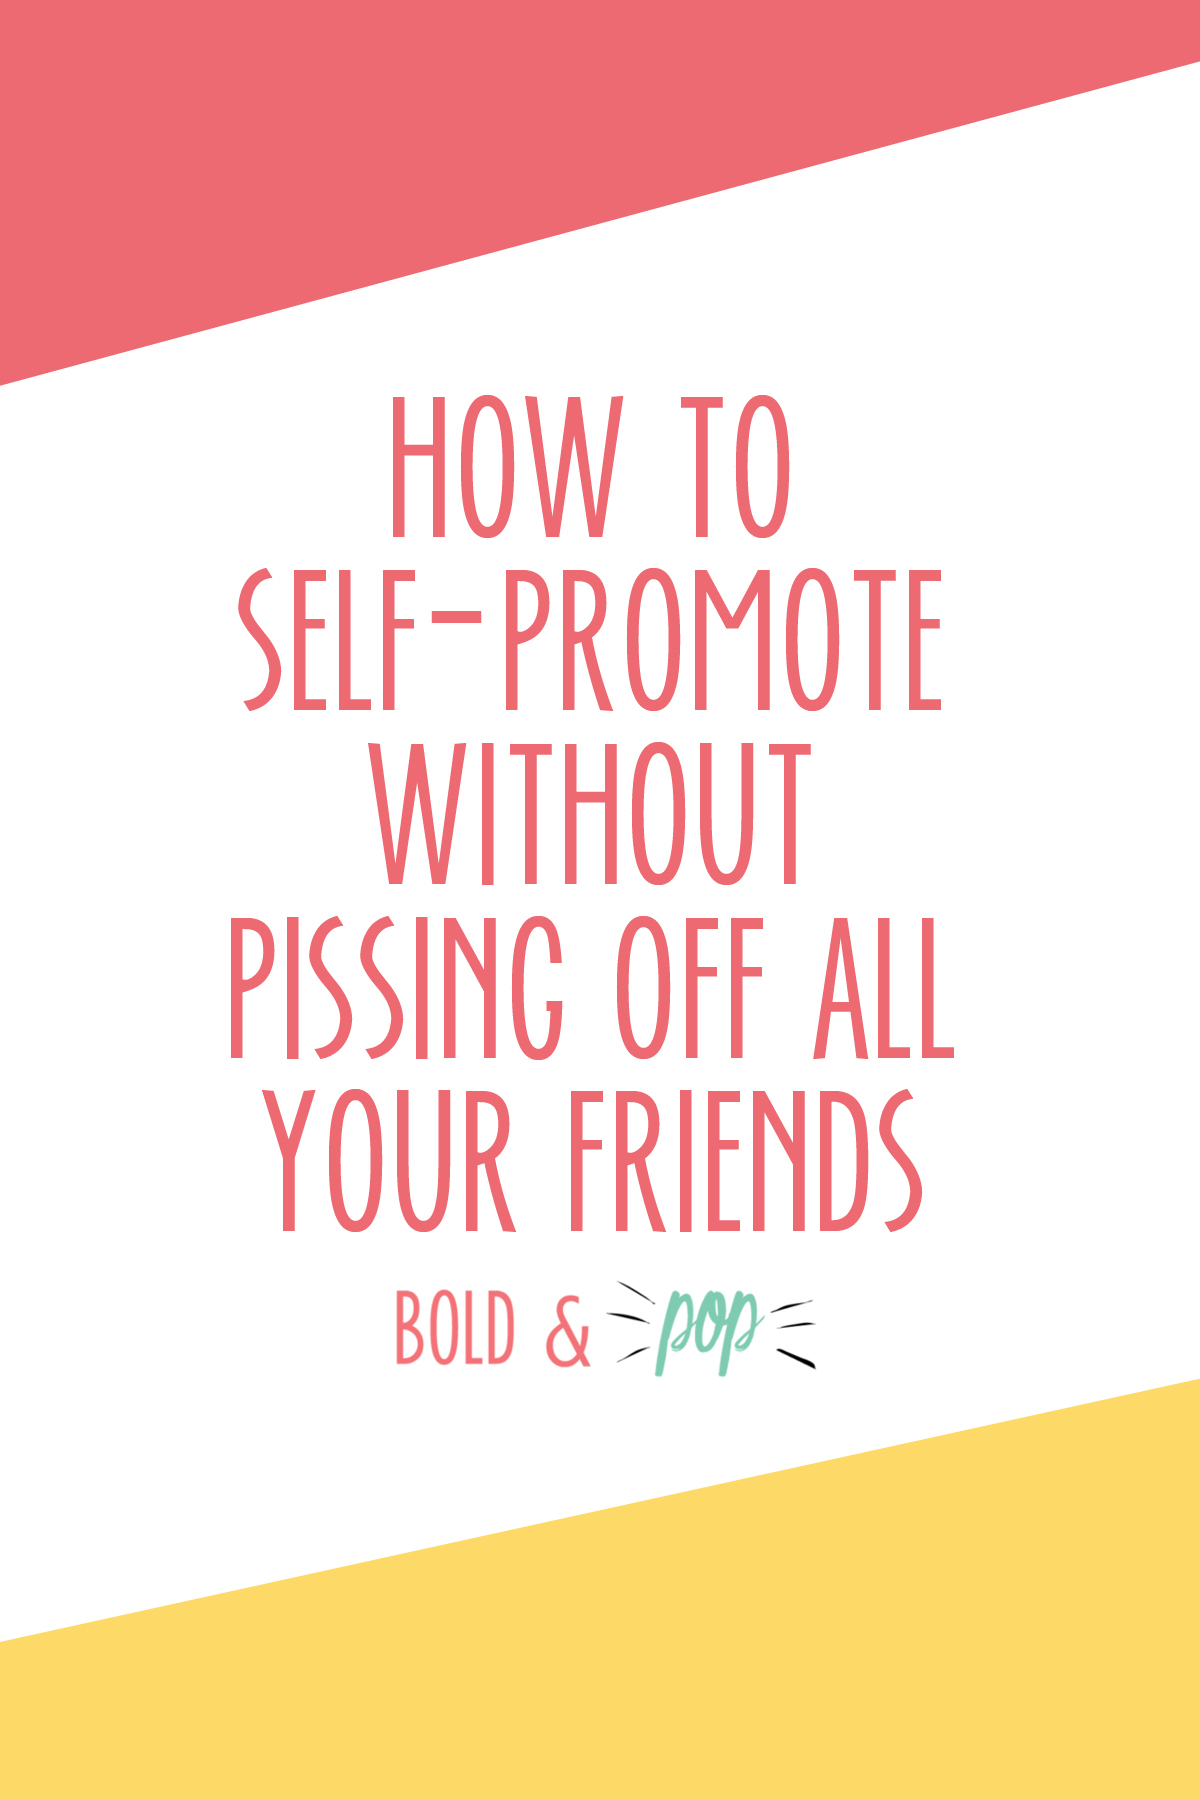 Bold & Pop : How to Self-Promote Without Pissing Off All Your Friends